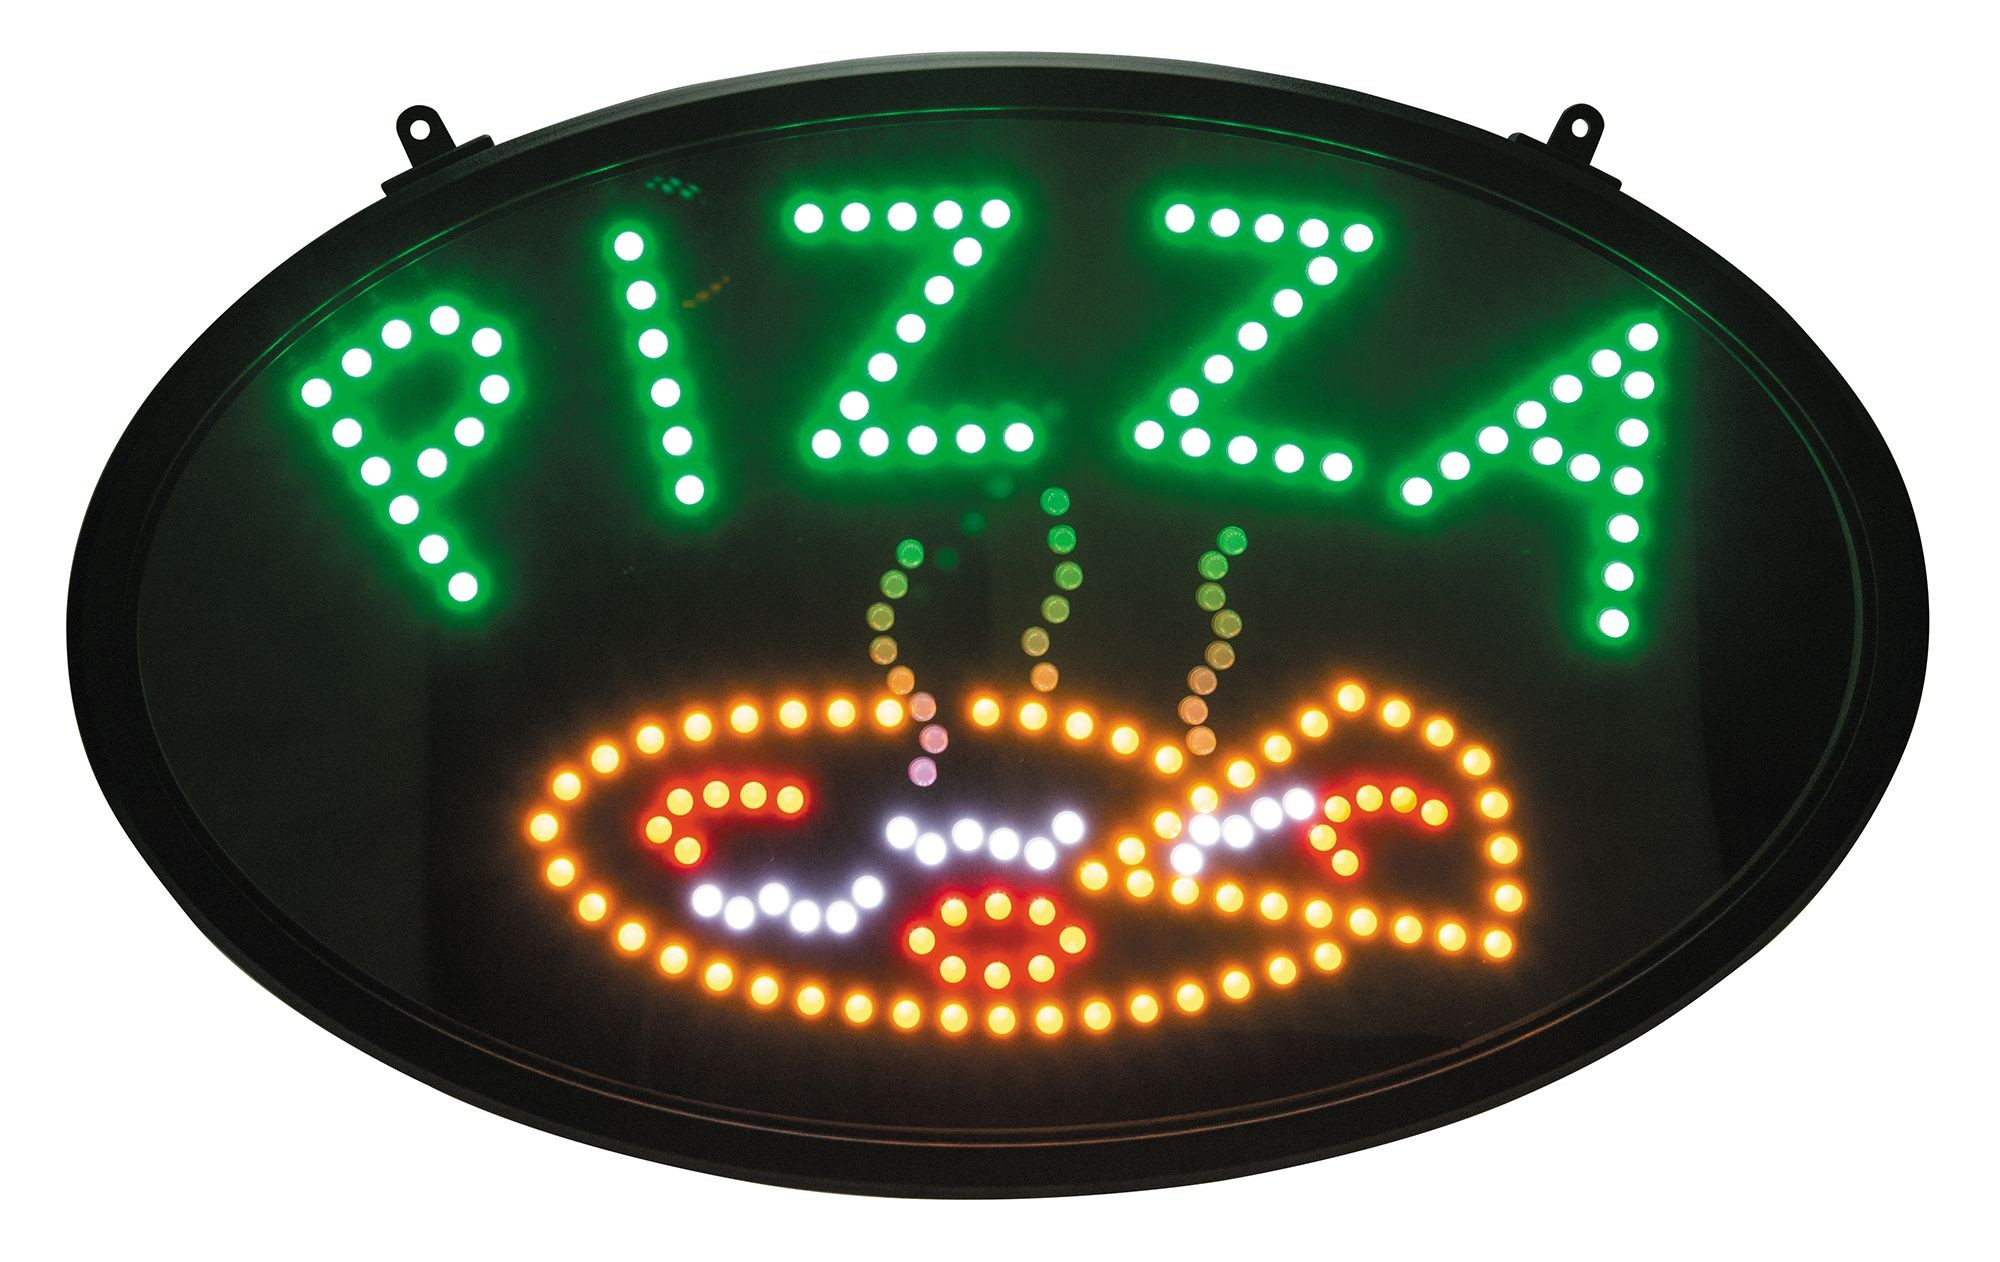 Winco LED-11 Pizza LED Neon Sign with Dust Proof Cover